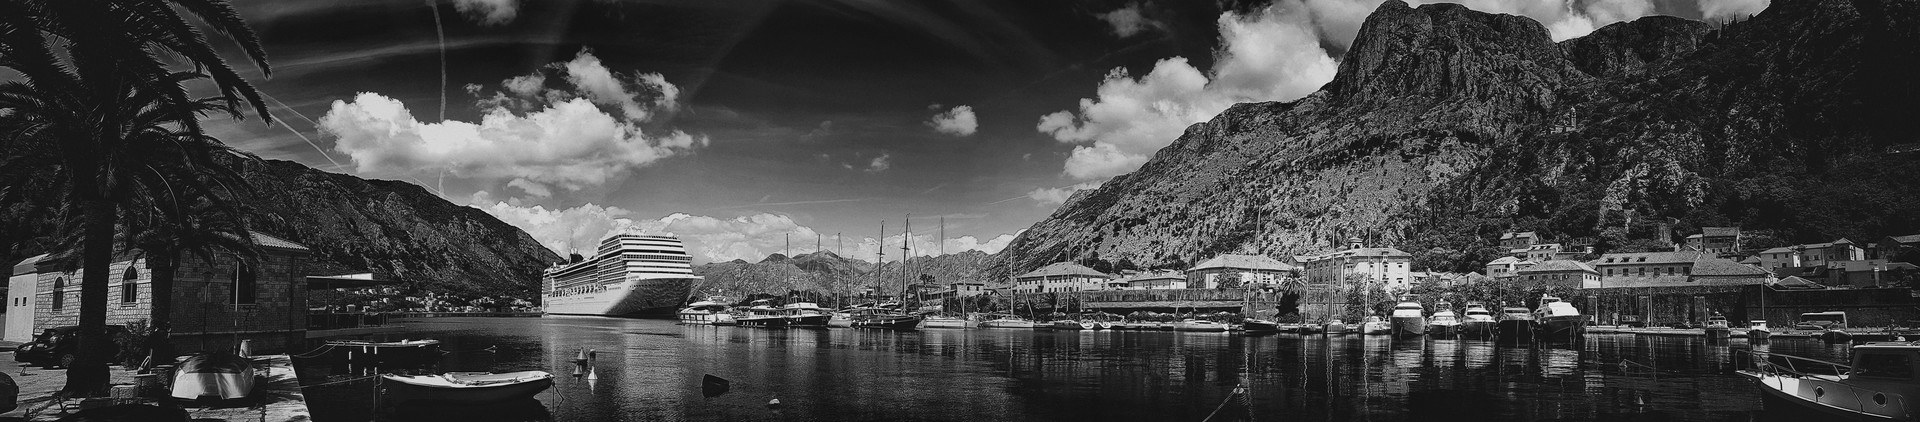 180 degrees of Kotor